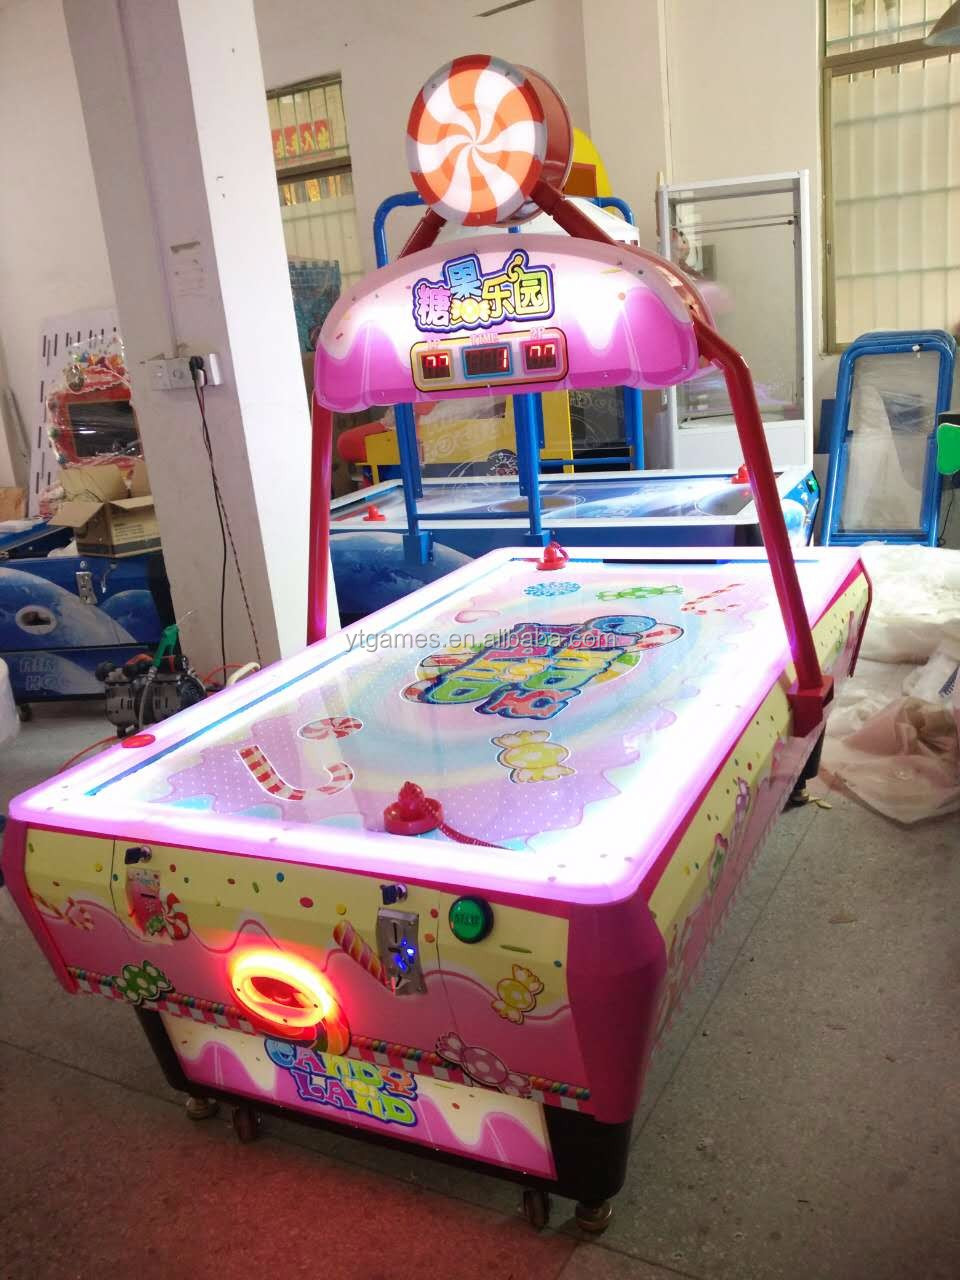 New Type Medium Size Kids Game Air Hockey Table Arcade Machine For Game City